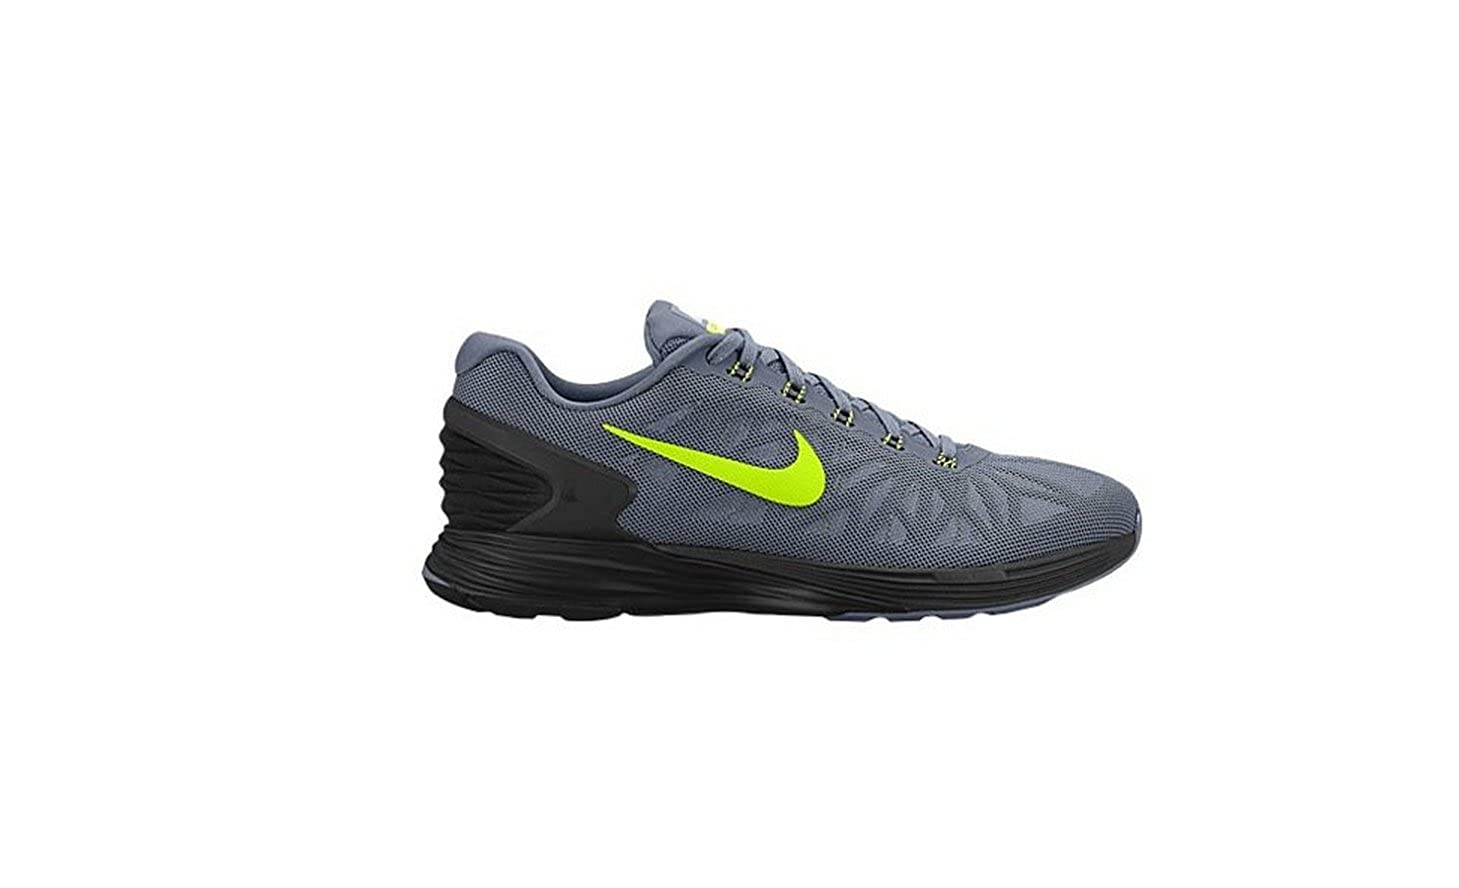 NIKE Mens Lunarglide 6 Running Shoes Size 10  Amazon.co.uk  Shoes   Bags 715186ee841e